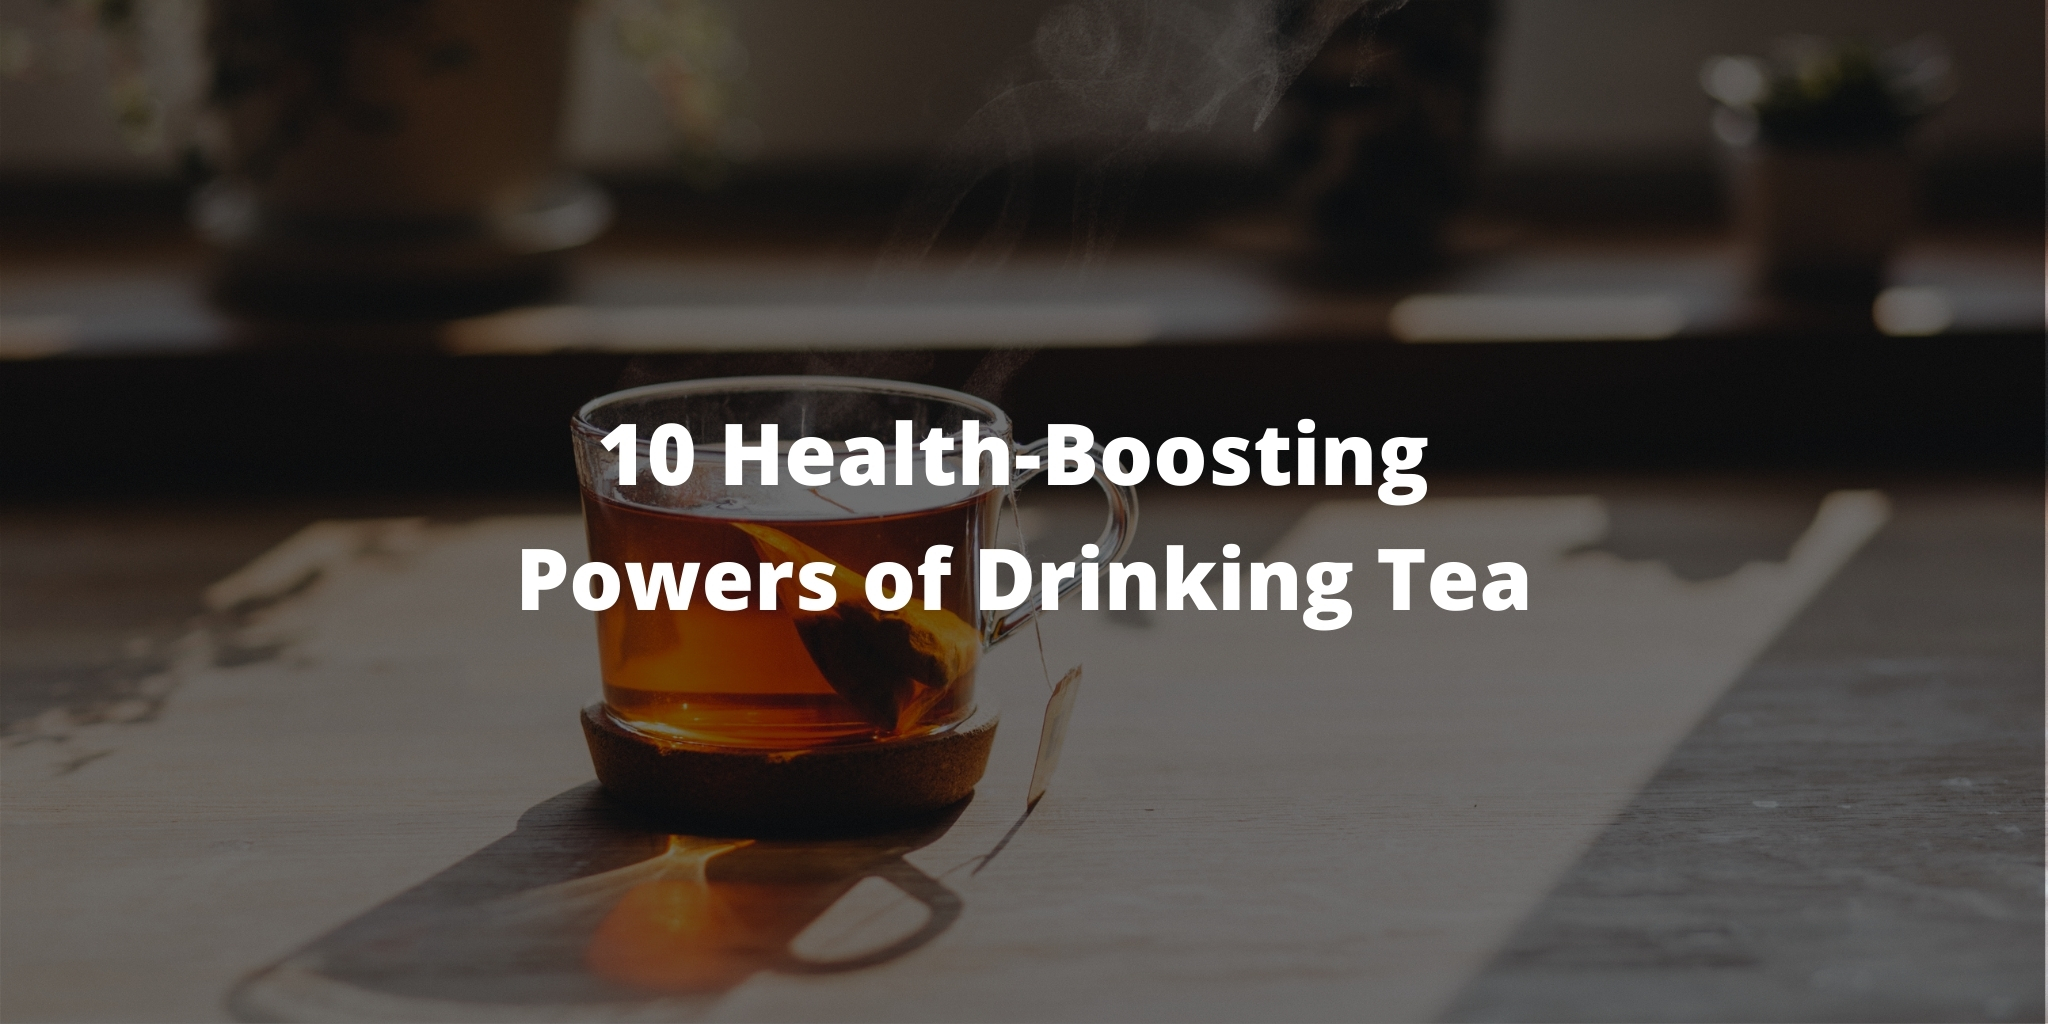 10 Health-Boosting Powers of Drinking Tea